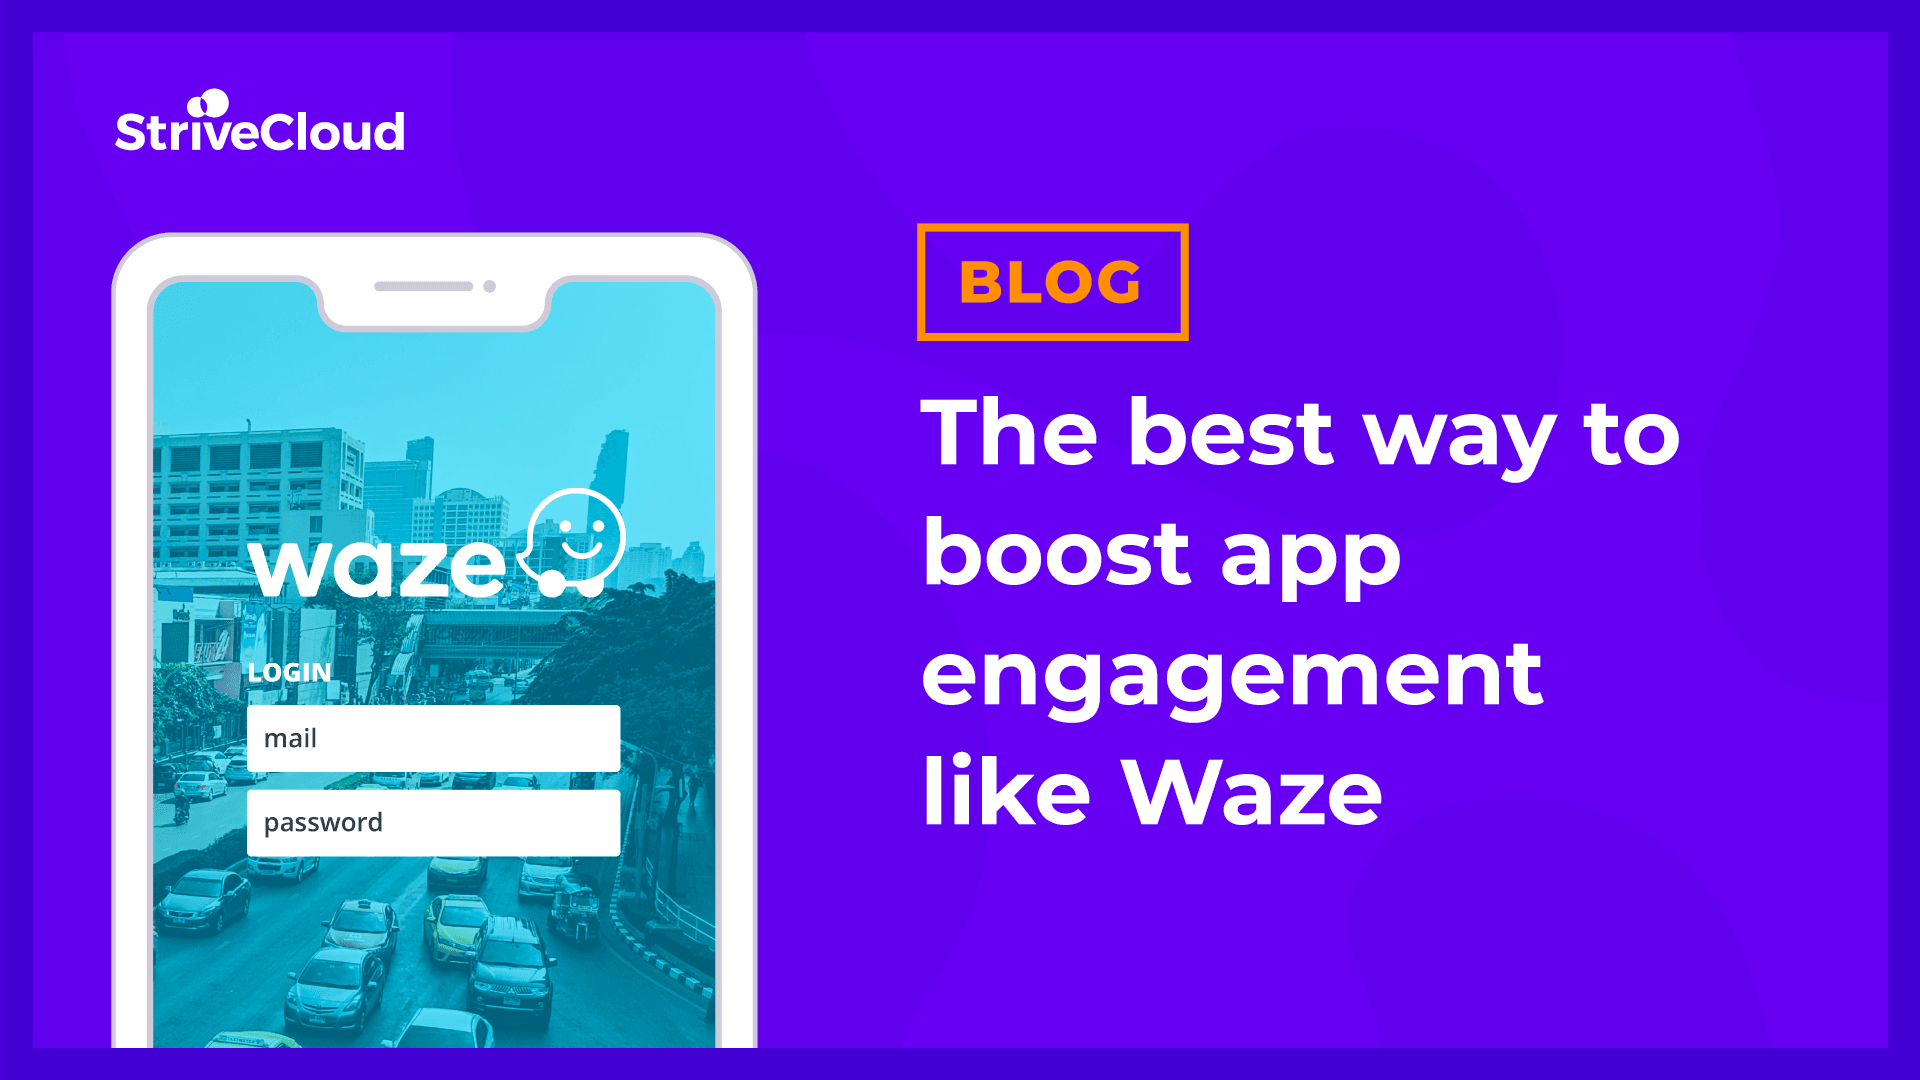 The best way to boost app engagement like Waze